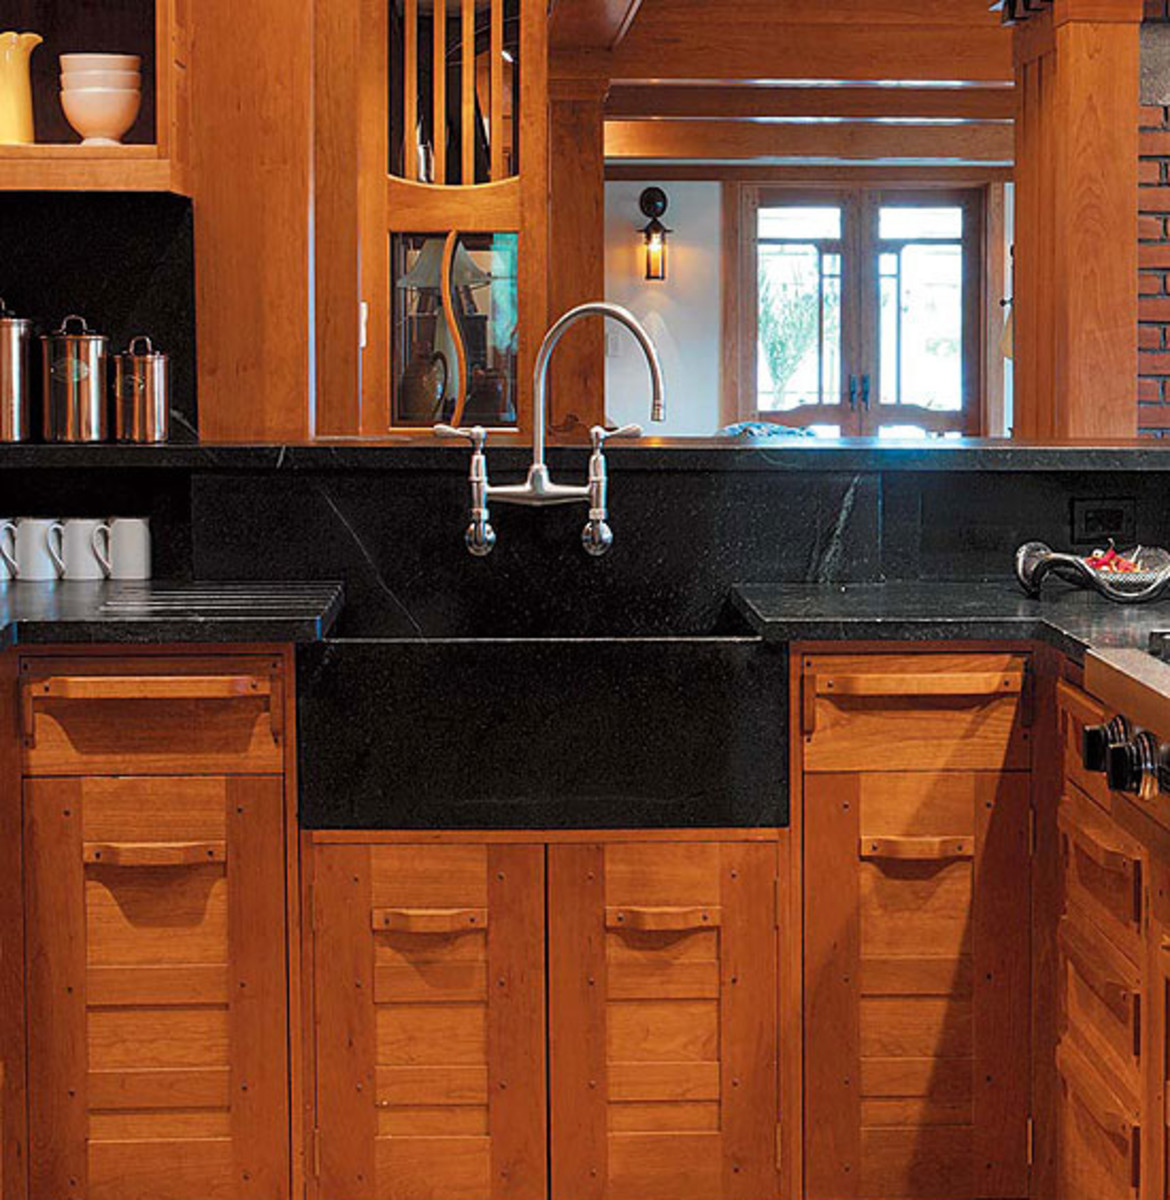 Granite Kitchen Countertops With Backsplash: Kitchen Sinks & Countertops: Go Trendy Or Timeless?